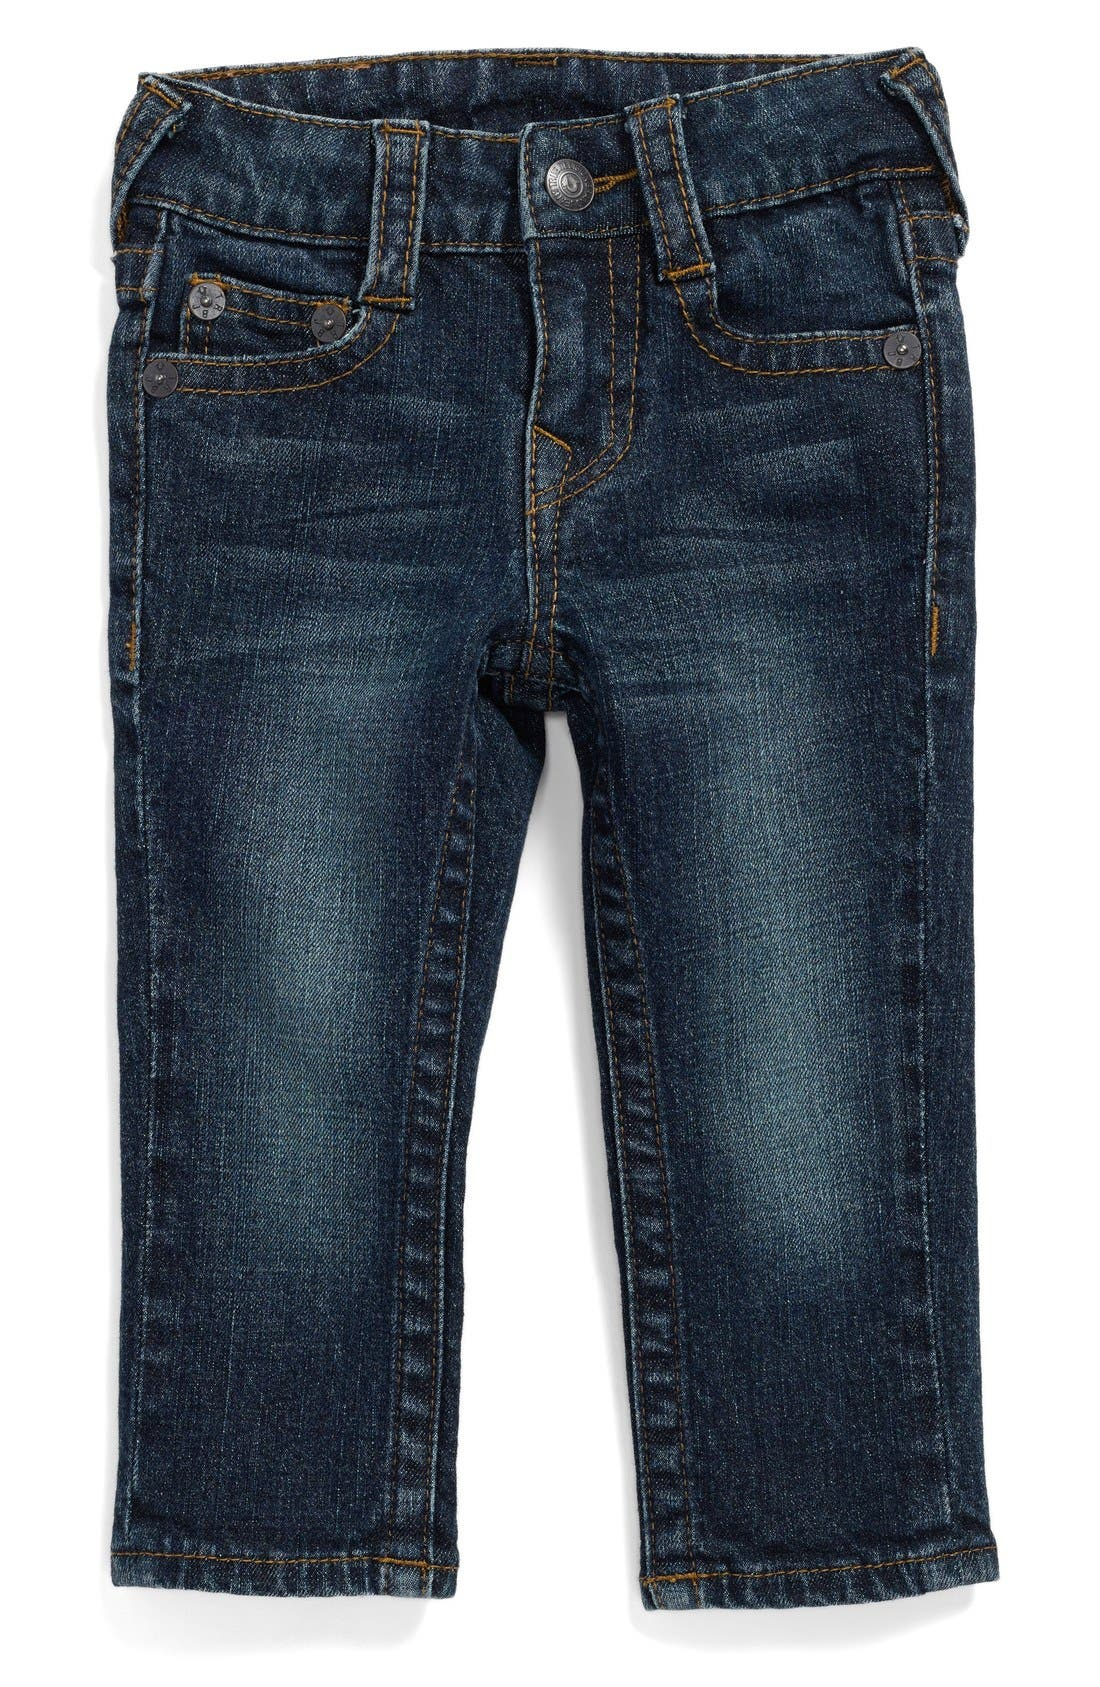 Alternate Image 1 Selected - True Religion Brand Jeans 'Geno' Relaxed Slim Fit Classic Jeans (Baby Boys) (Online Exclusive)